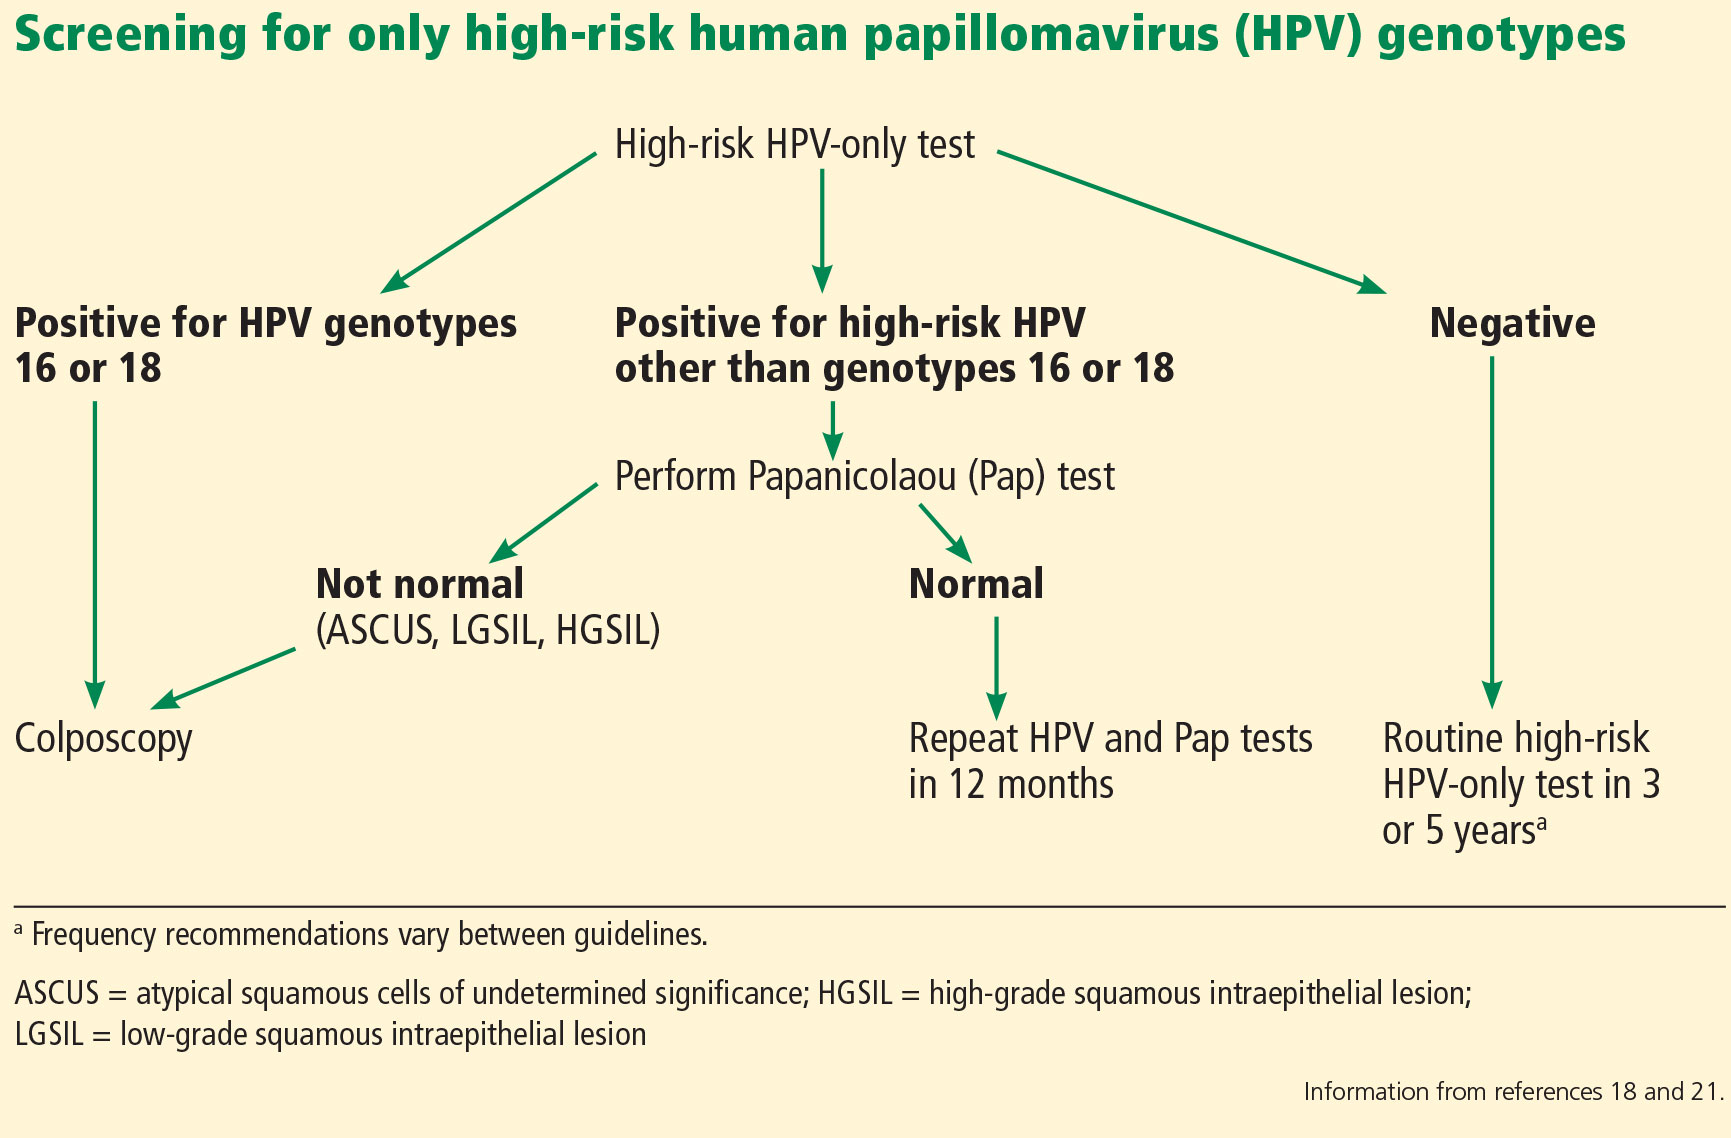 Hpv high risk with 16 and 18 genotyping - eng2ro.ro